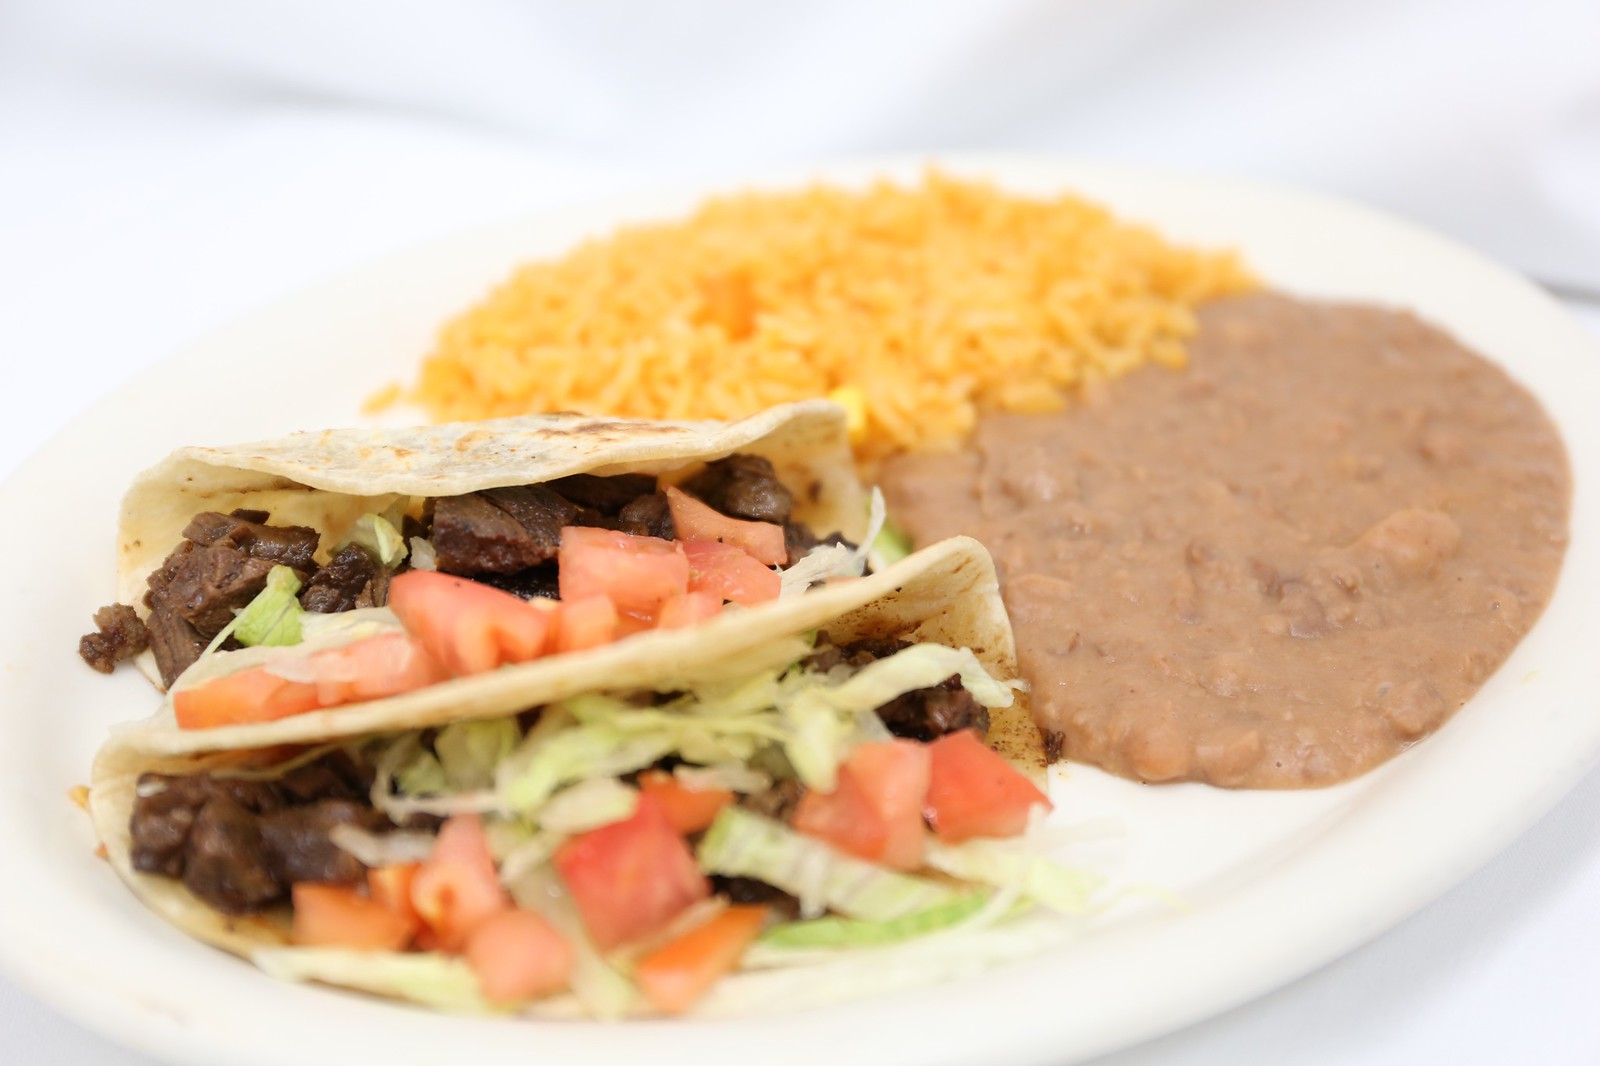 Taco Plate - Mexican Food in Houston, Texas